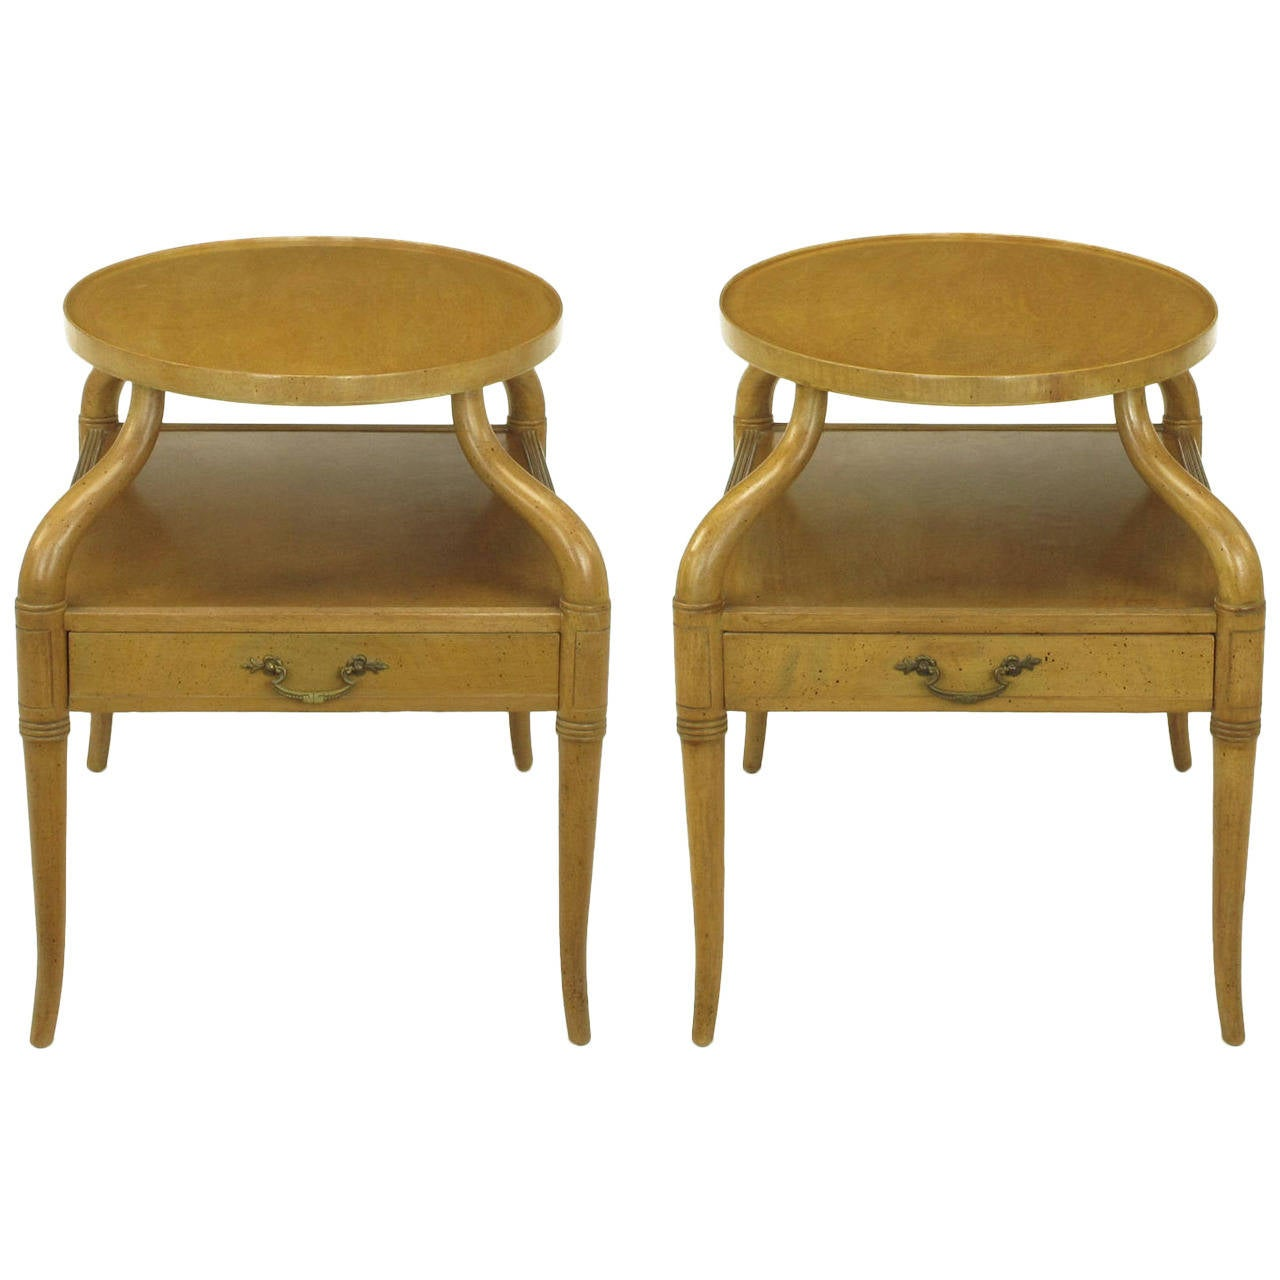 Pair of 1940s Mahogany Plateau Side Tables with Sinuous Legs